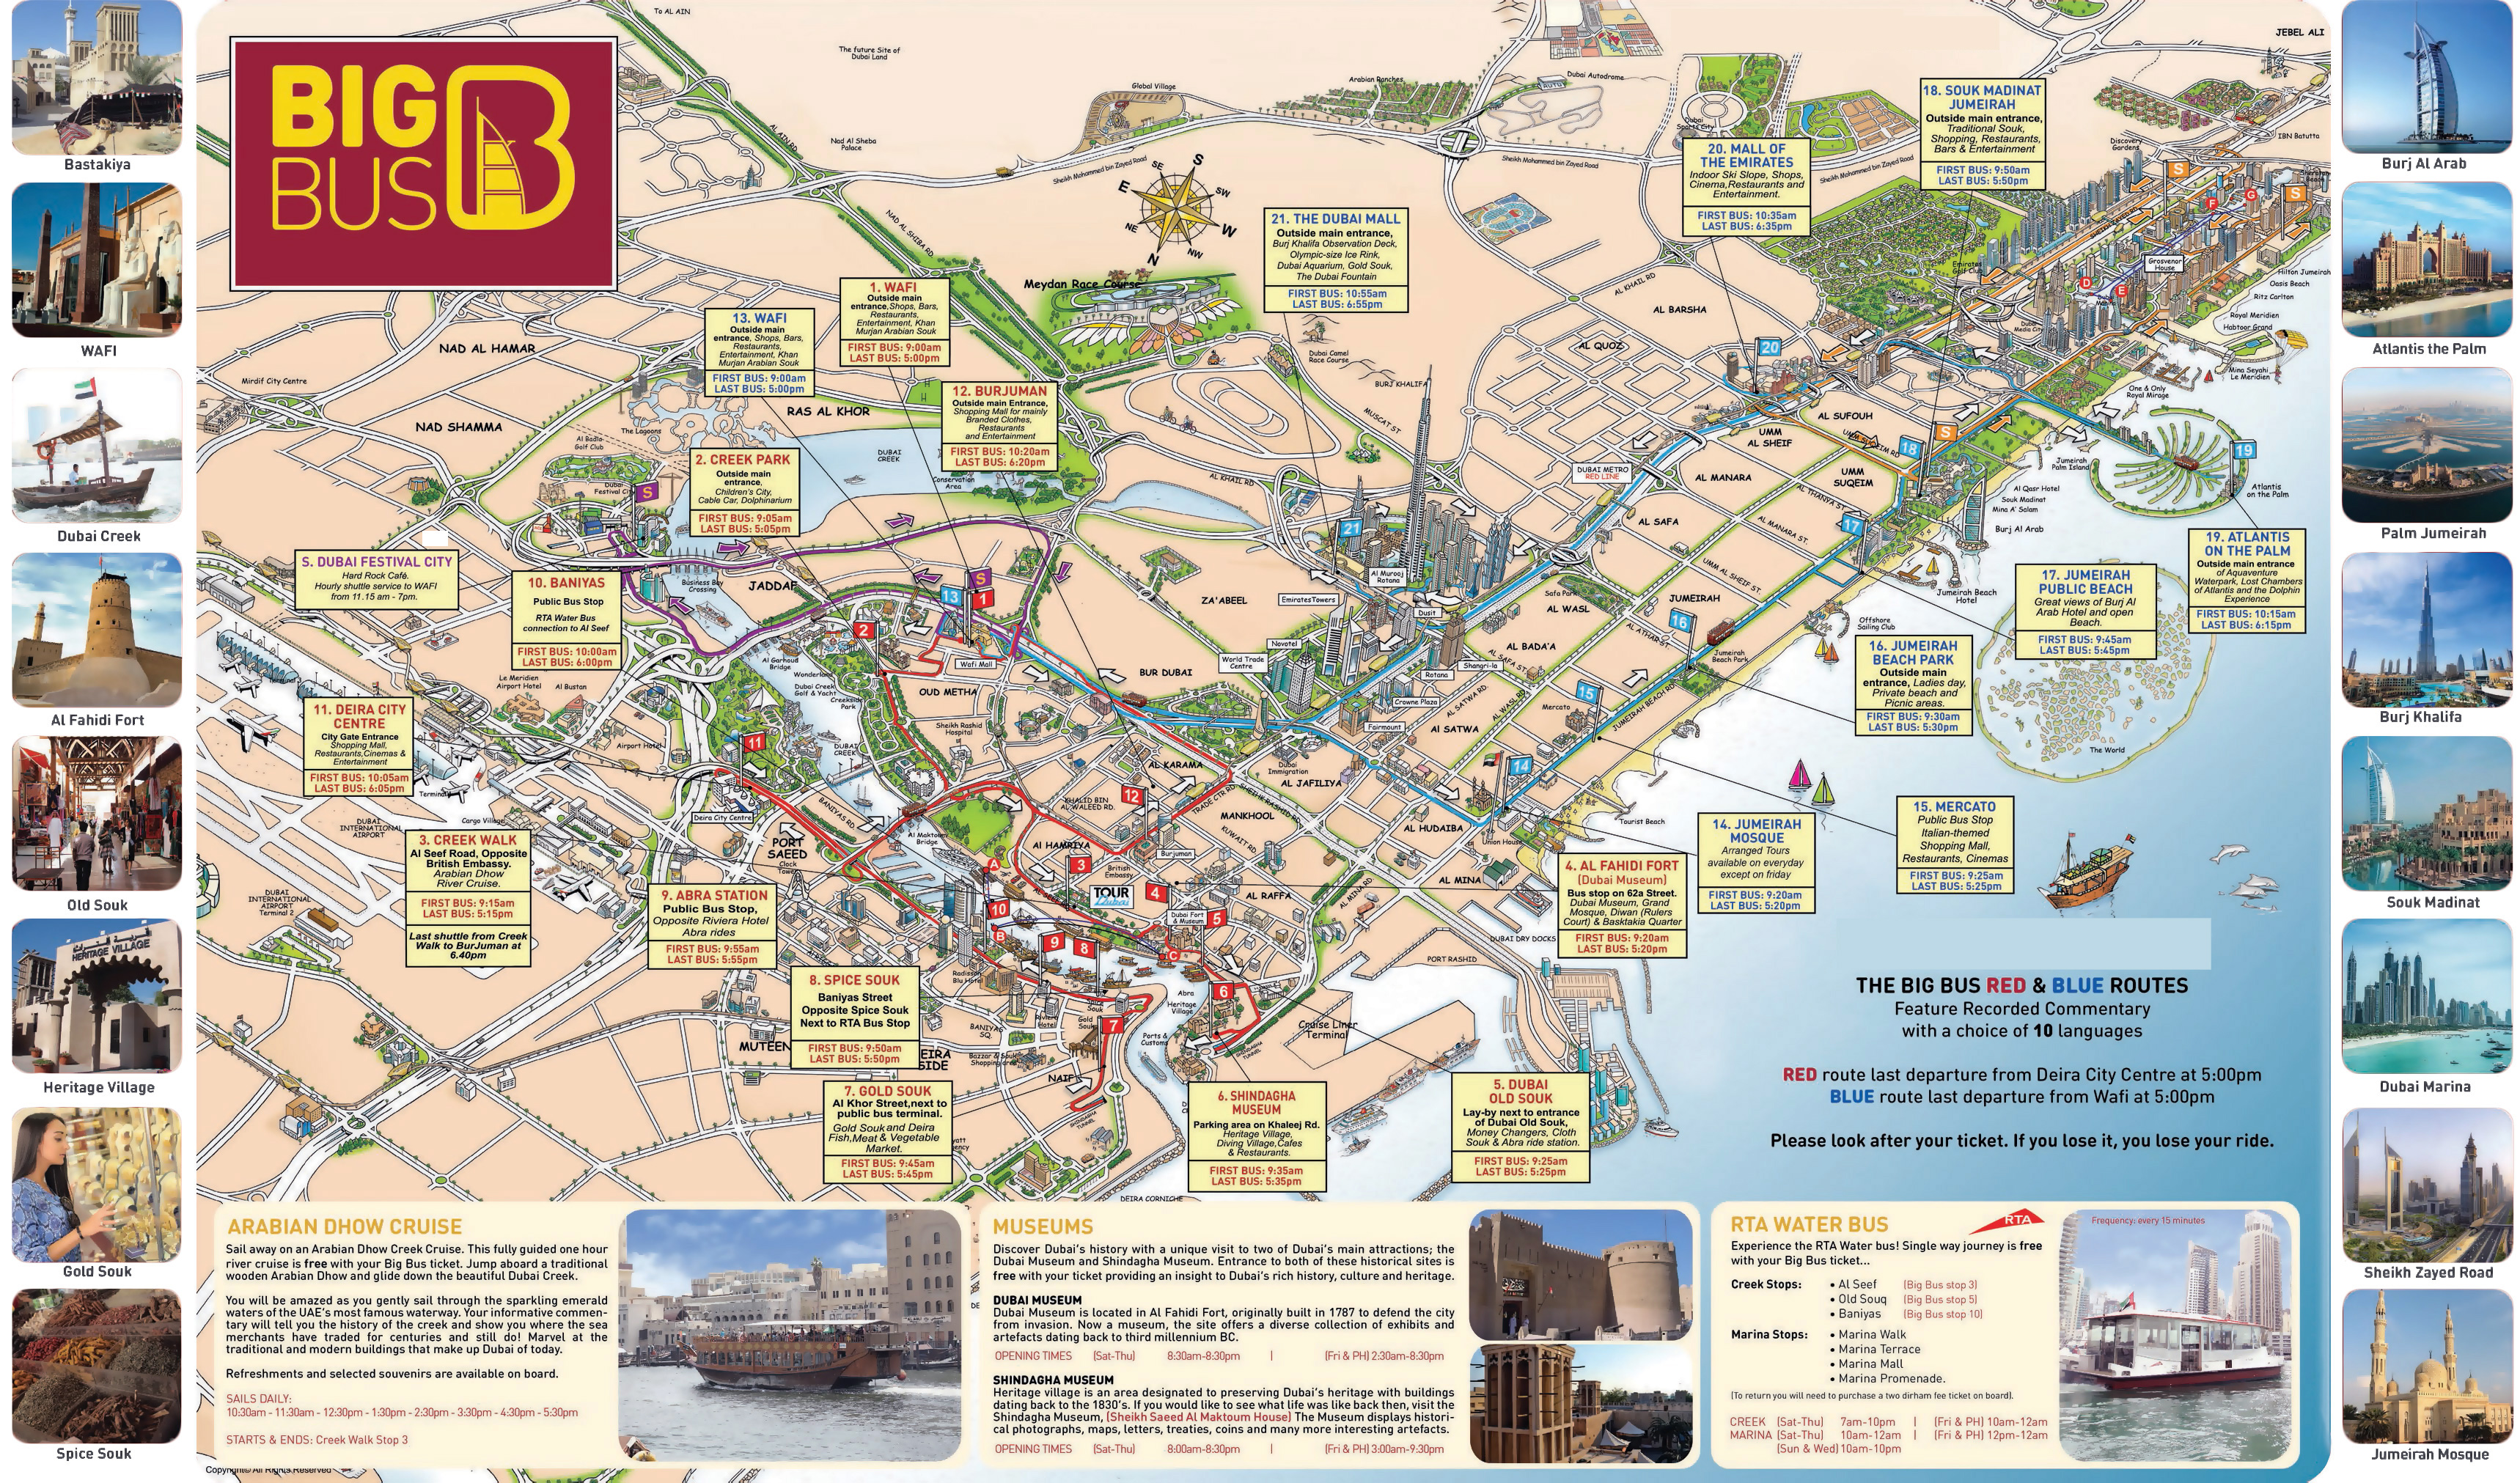 Map Of Asia Dubai.Large Detailed Tourist Map Of Dubai Dubai Uae United Arab